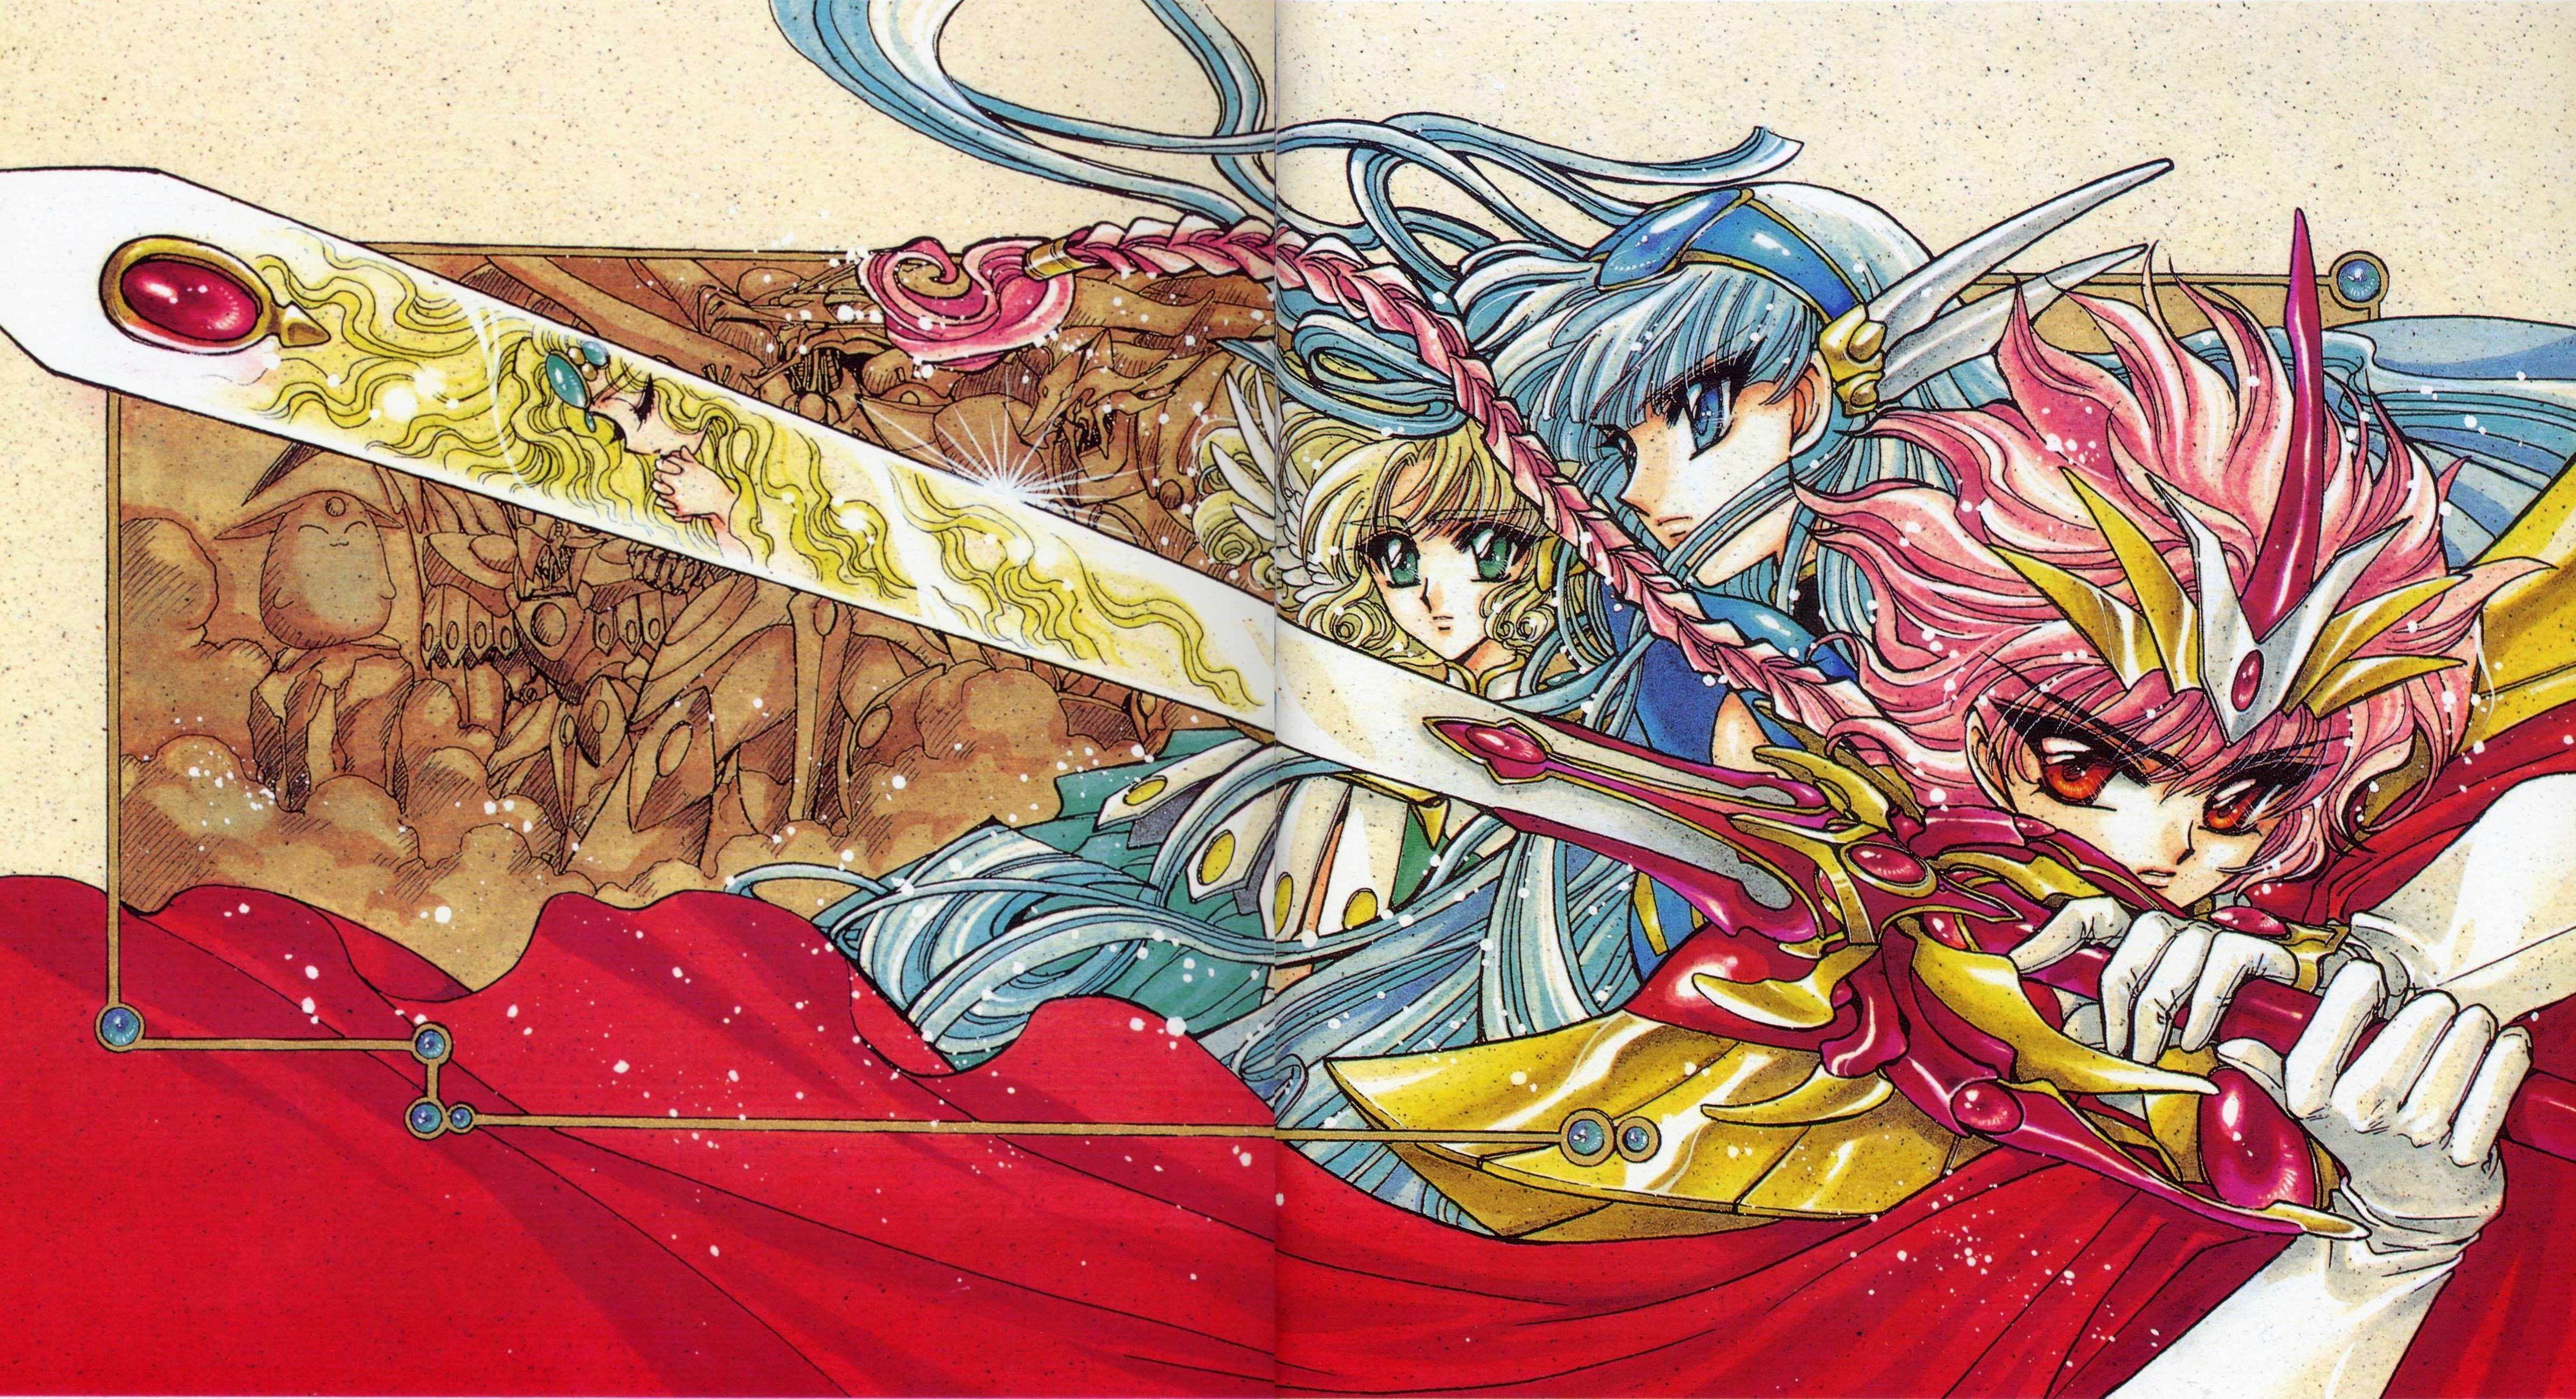 Magic Knight Rayearth Series OVA wallpapers